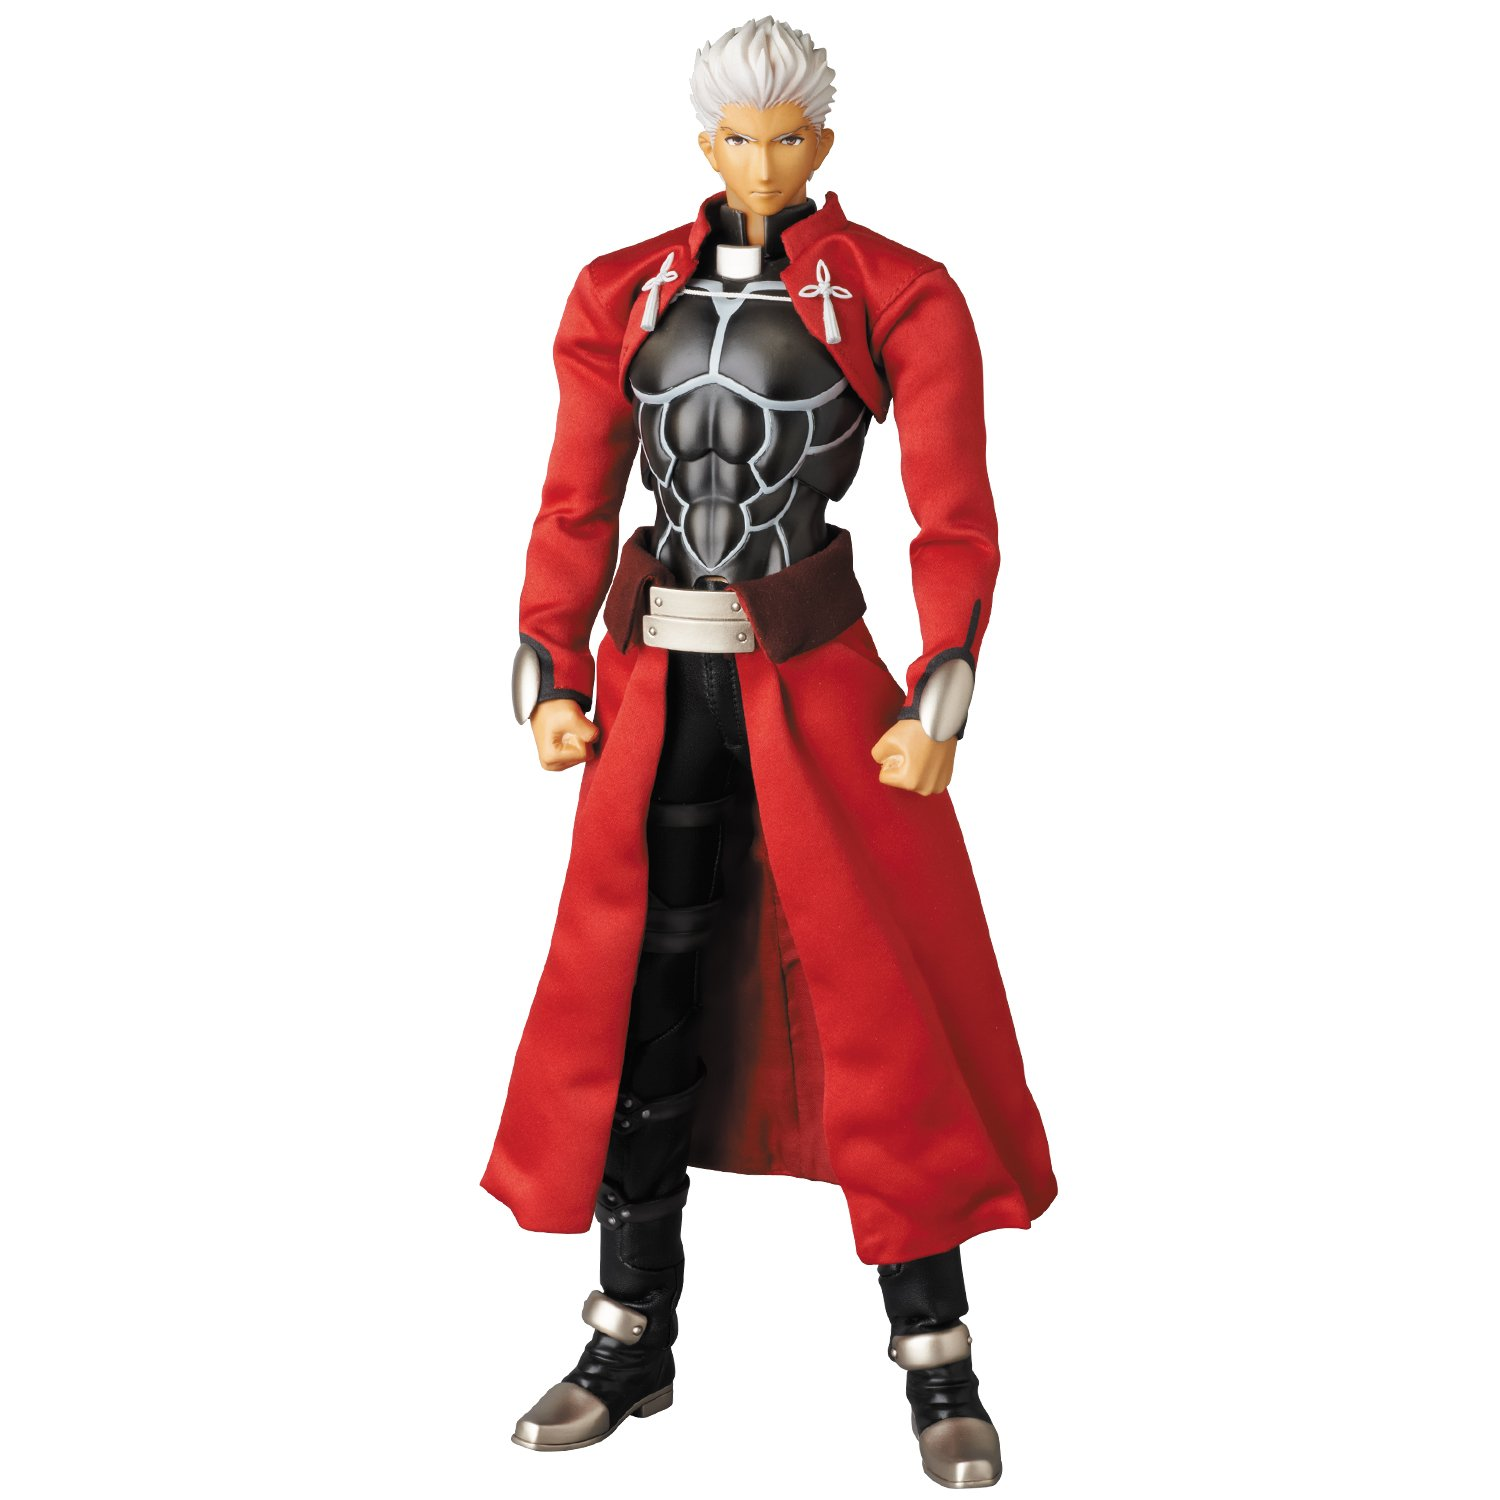 Unbekannt Medicom Fate/Stay Night: Archer Real Action Hero Figur